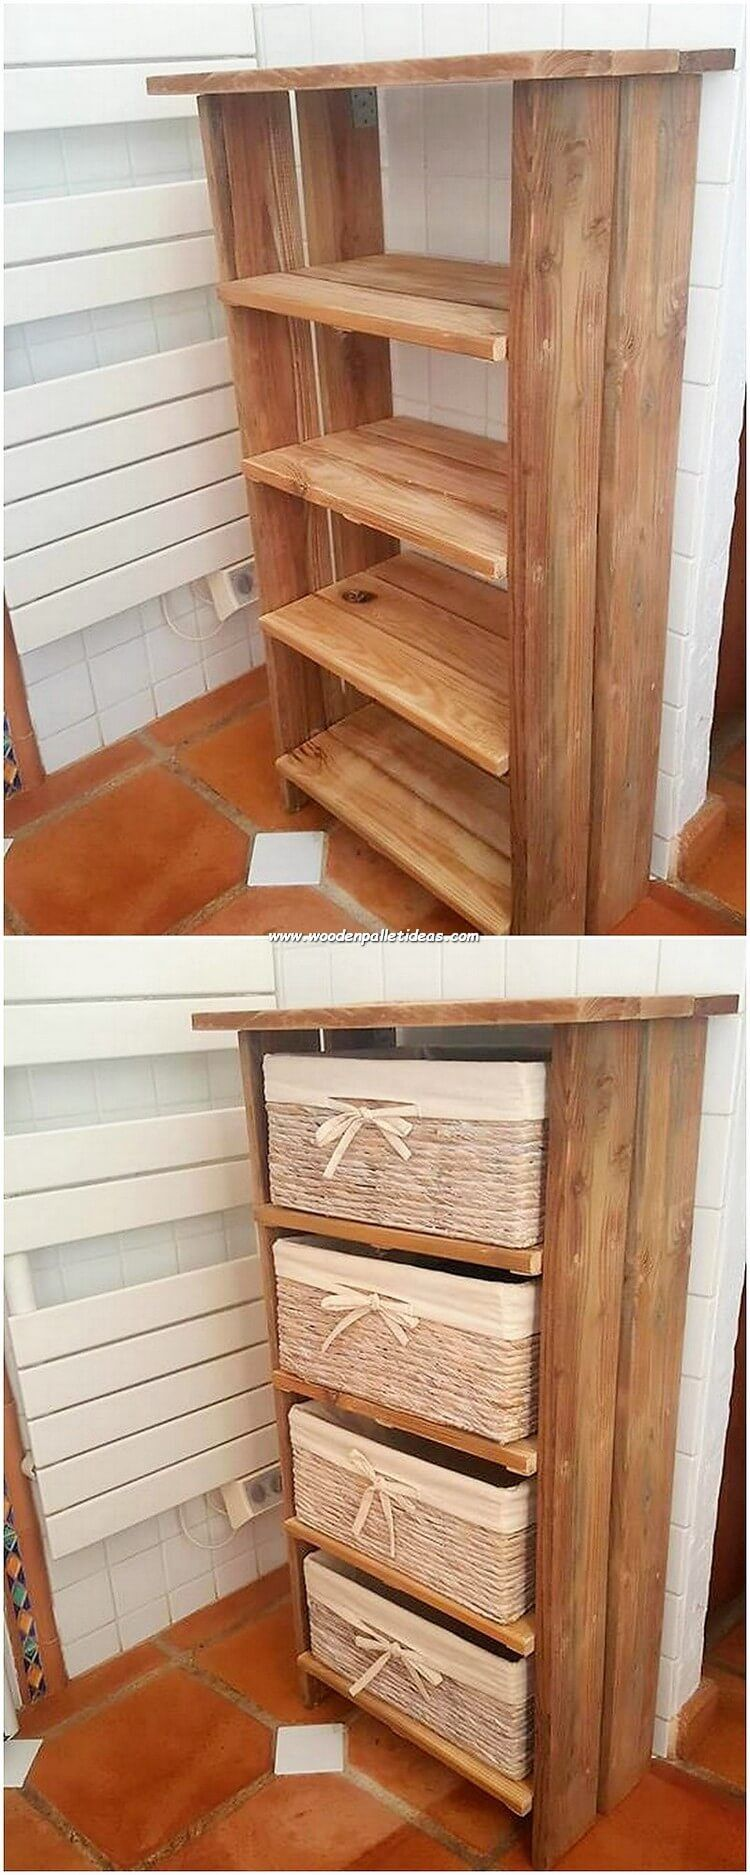 In Order To Make Your House Shelving Stand Design As Exciting Looking You Can Place The Wood Pallet Material In It With The Effect Of The Long Giant